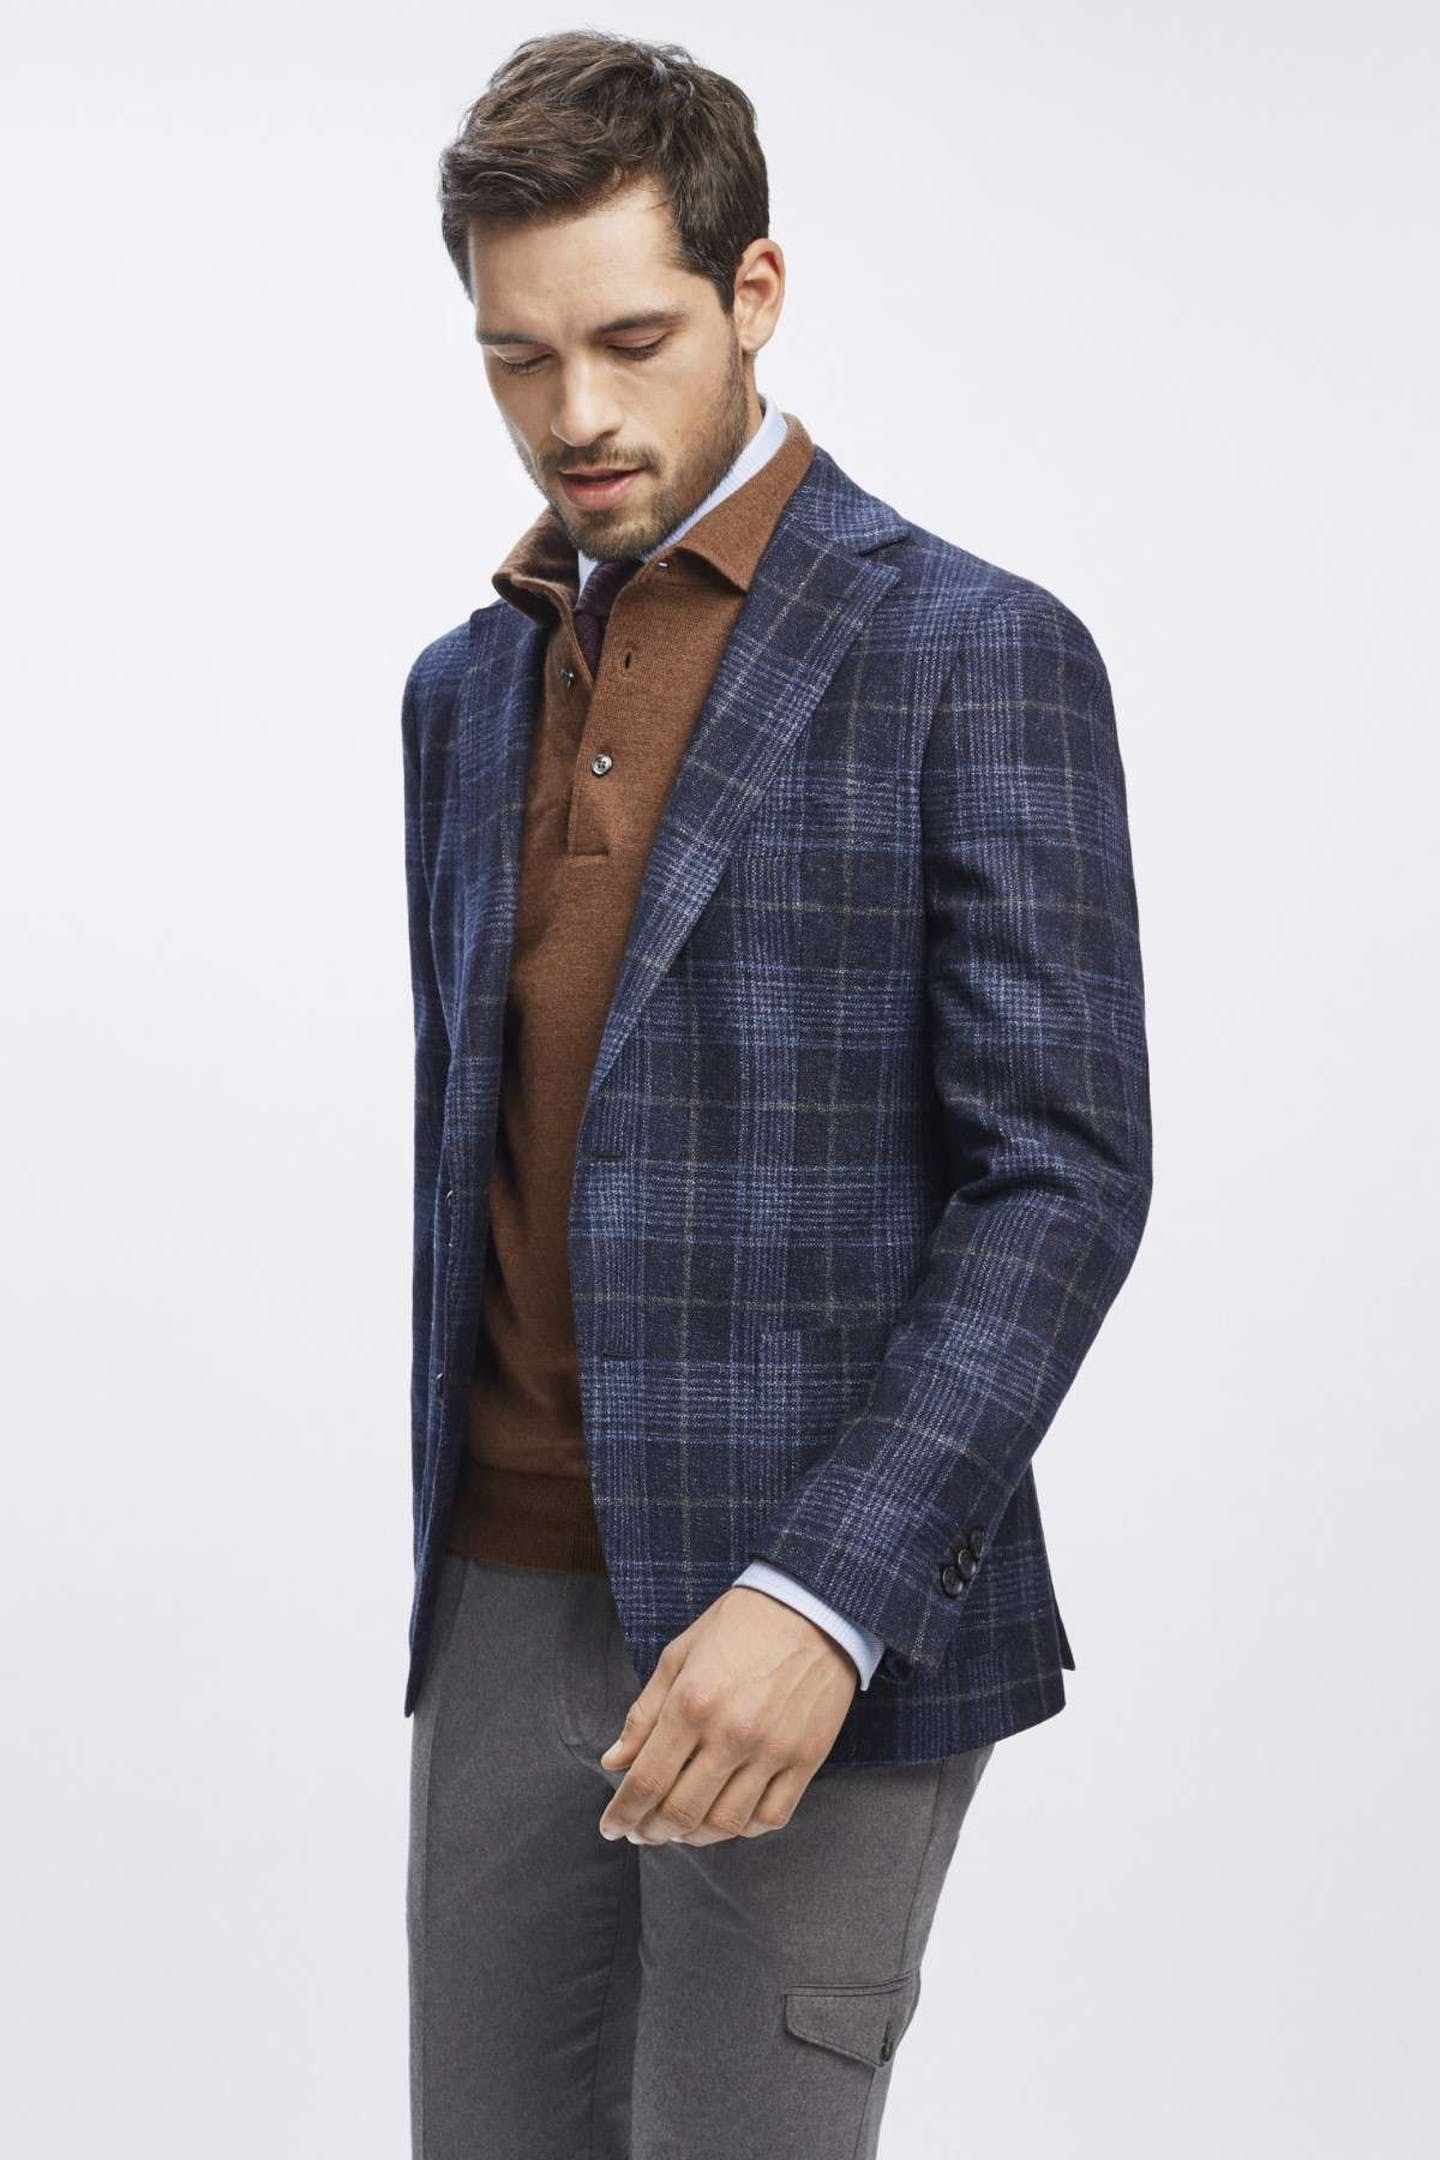 Prince of Wales fabric: How to wear glen plaid boggi milano blue jacket